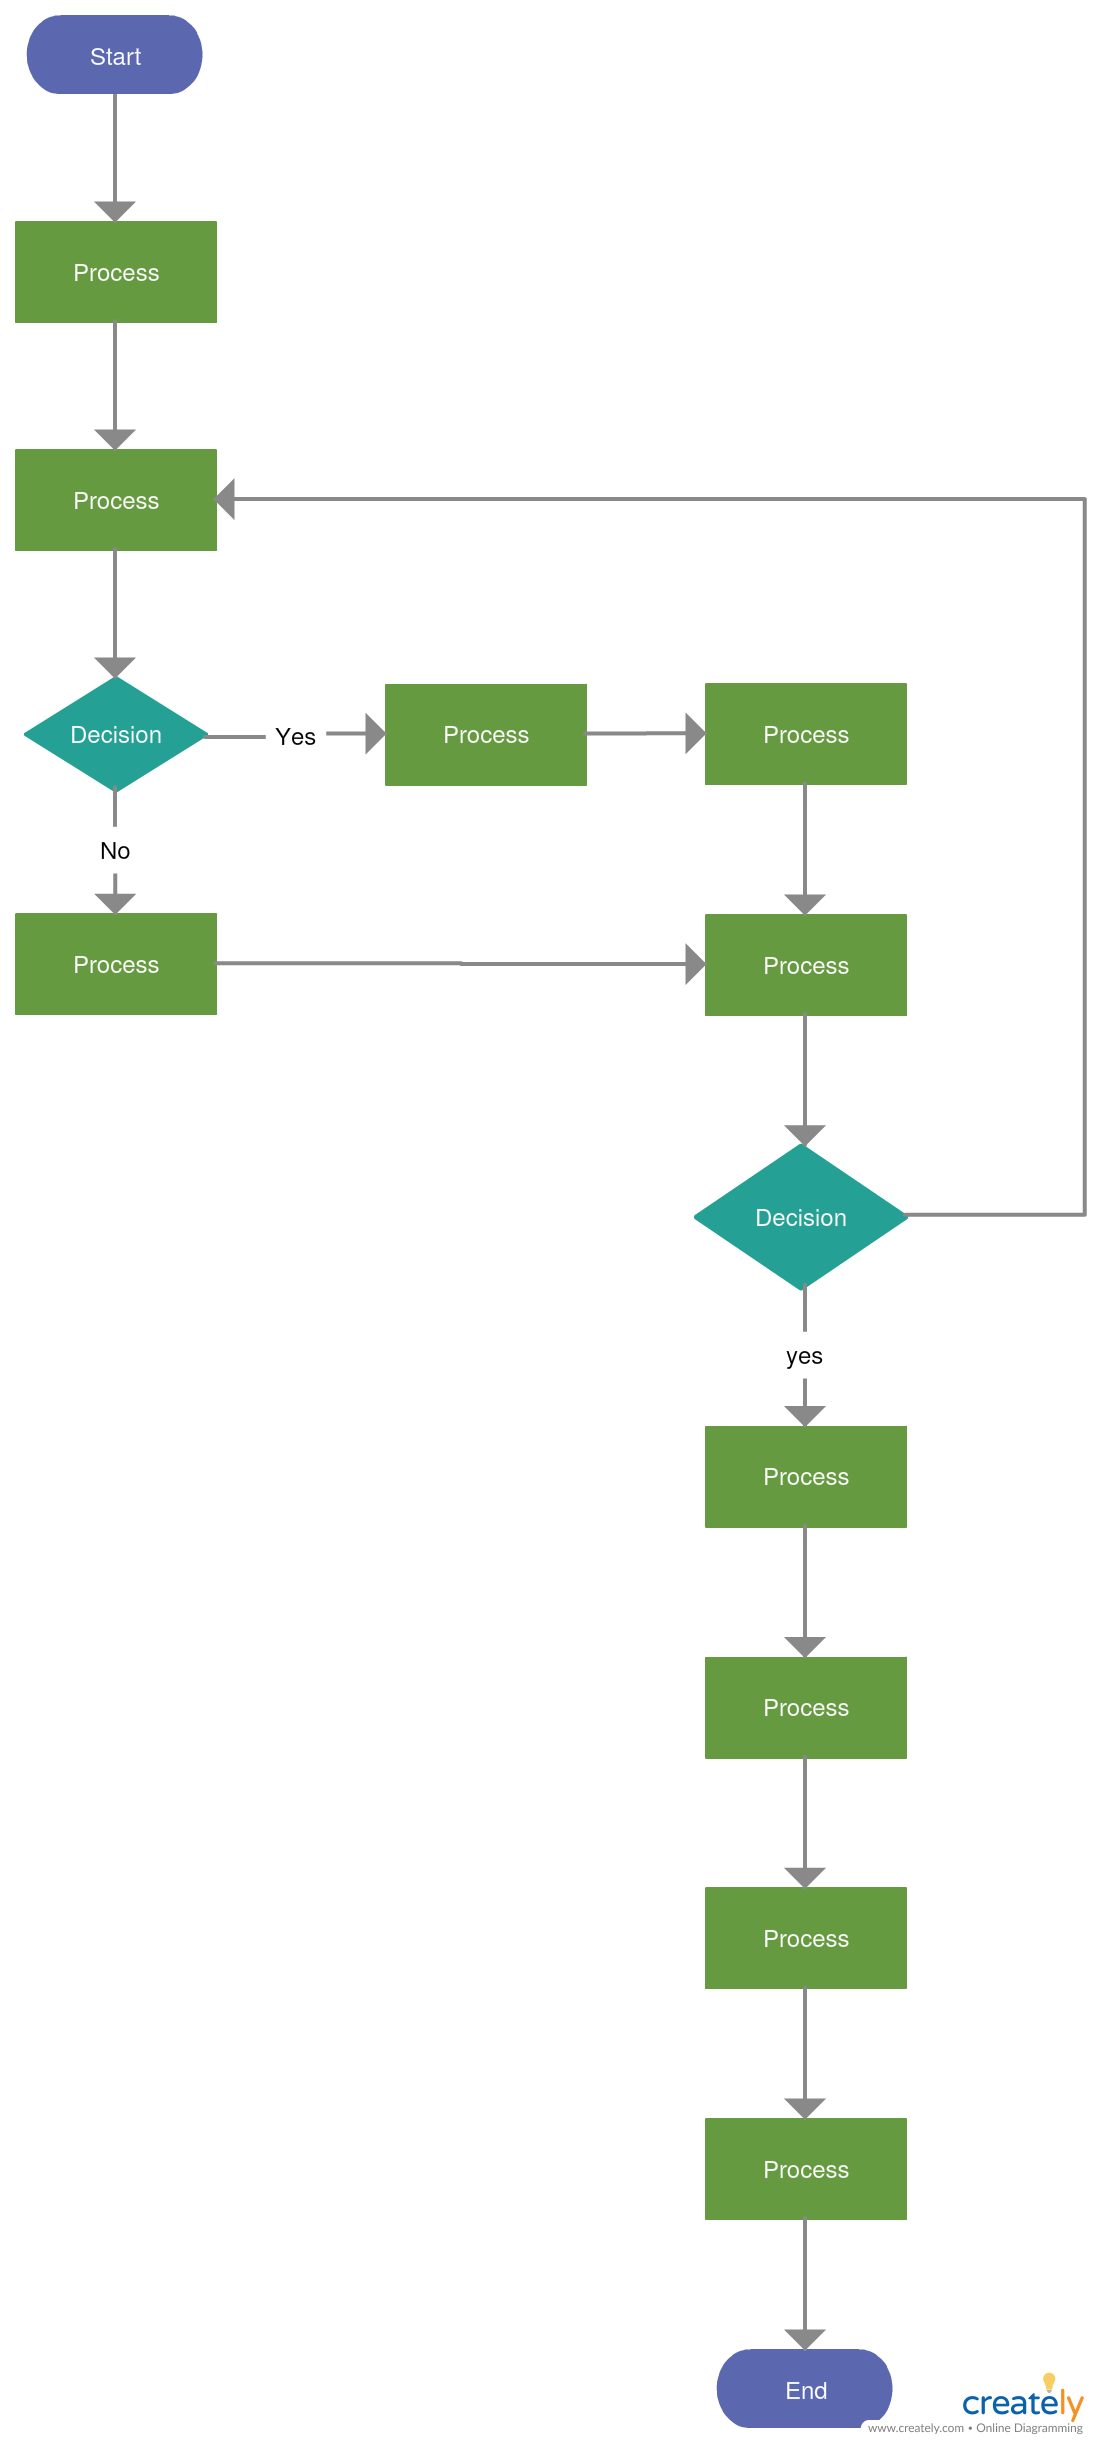 hight resolution of vertical flowchart template editable online shopping flowchart to visualize your online shopping process flow and make improvements to them